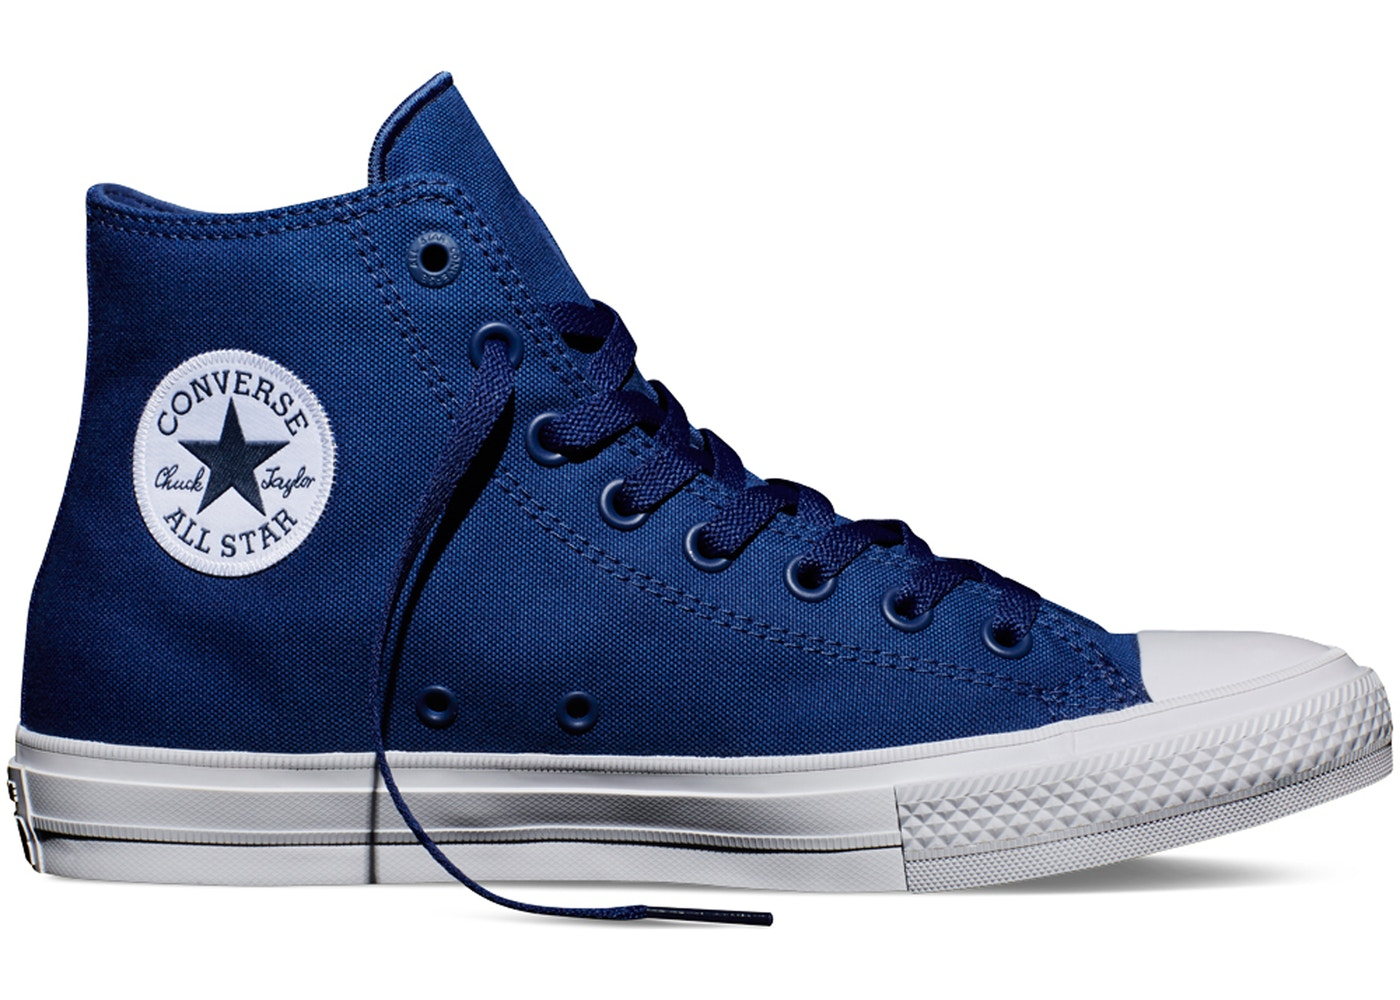 bc867943796 Converse Chuck Taylor All-Star 2 High Sodalite Blue - 150146C